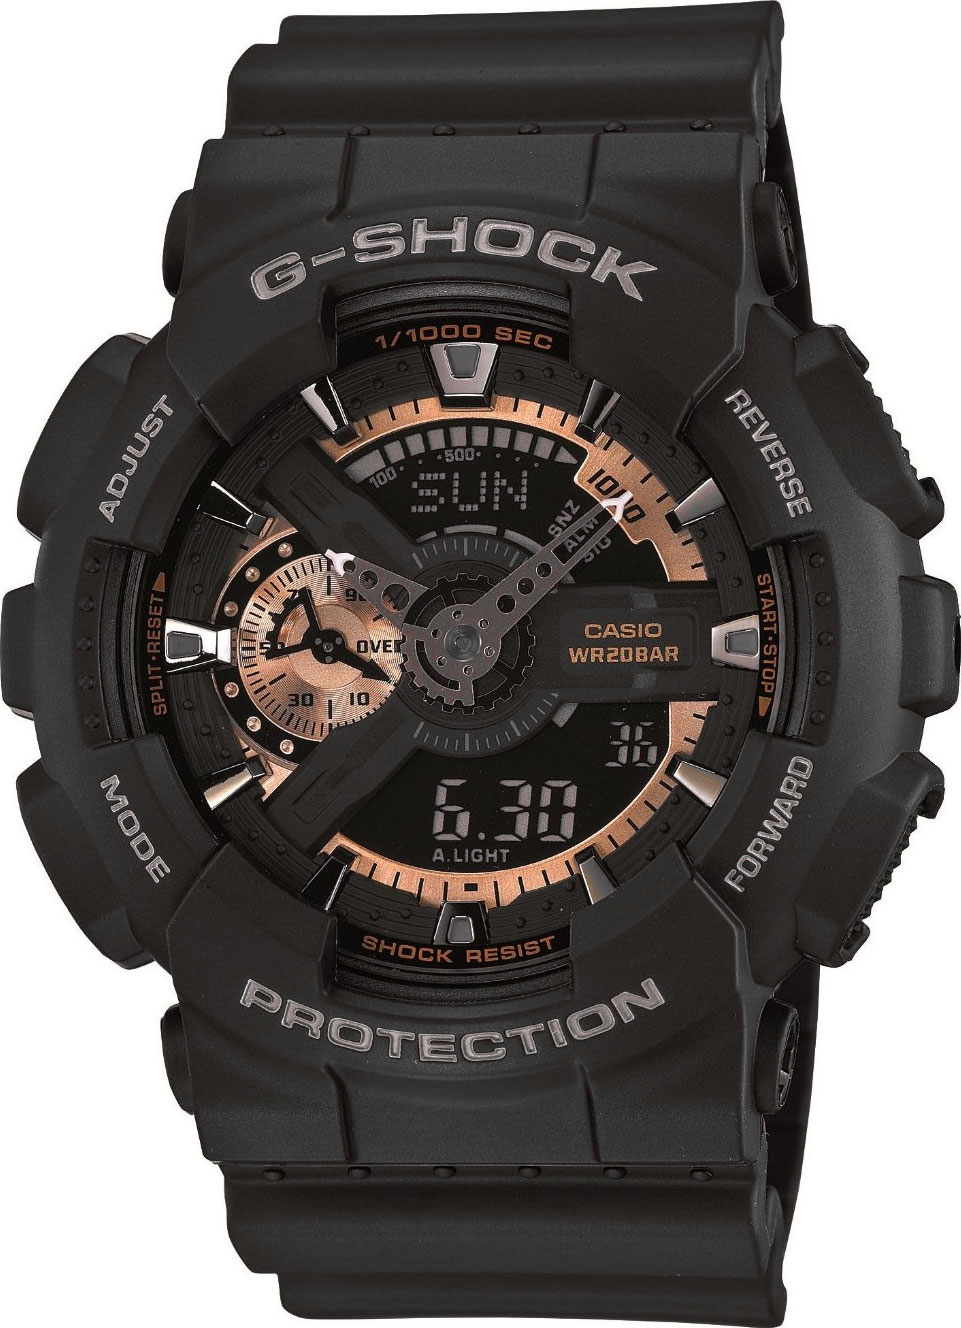 Casio G-shock GA-110RG-1A casio g shock ga 100l 1a